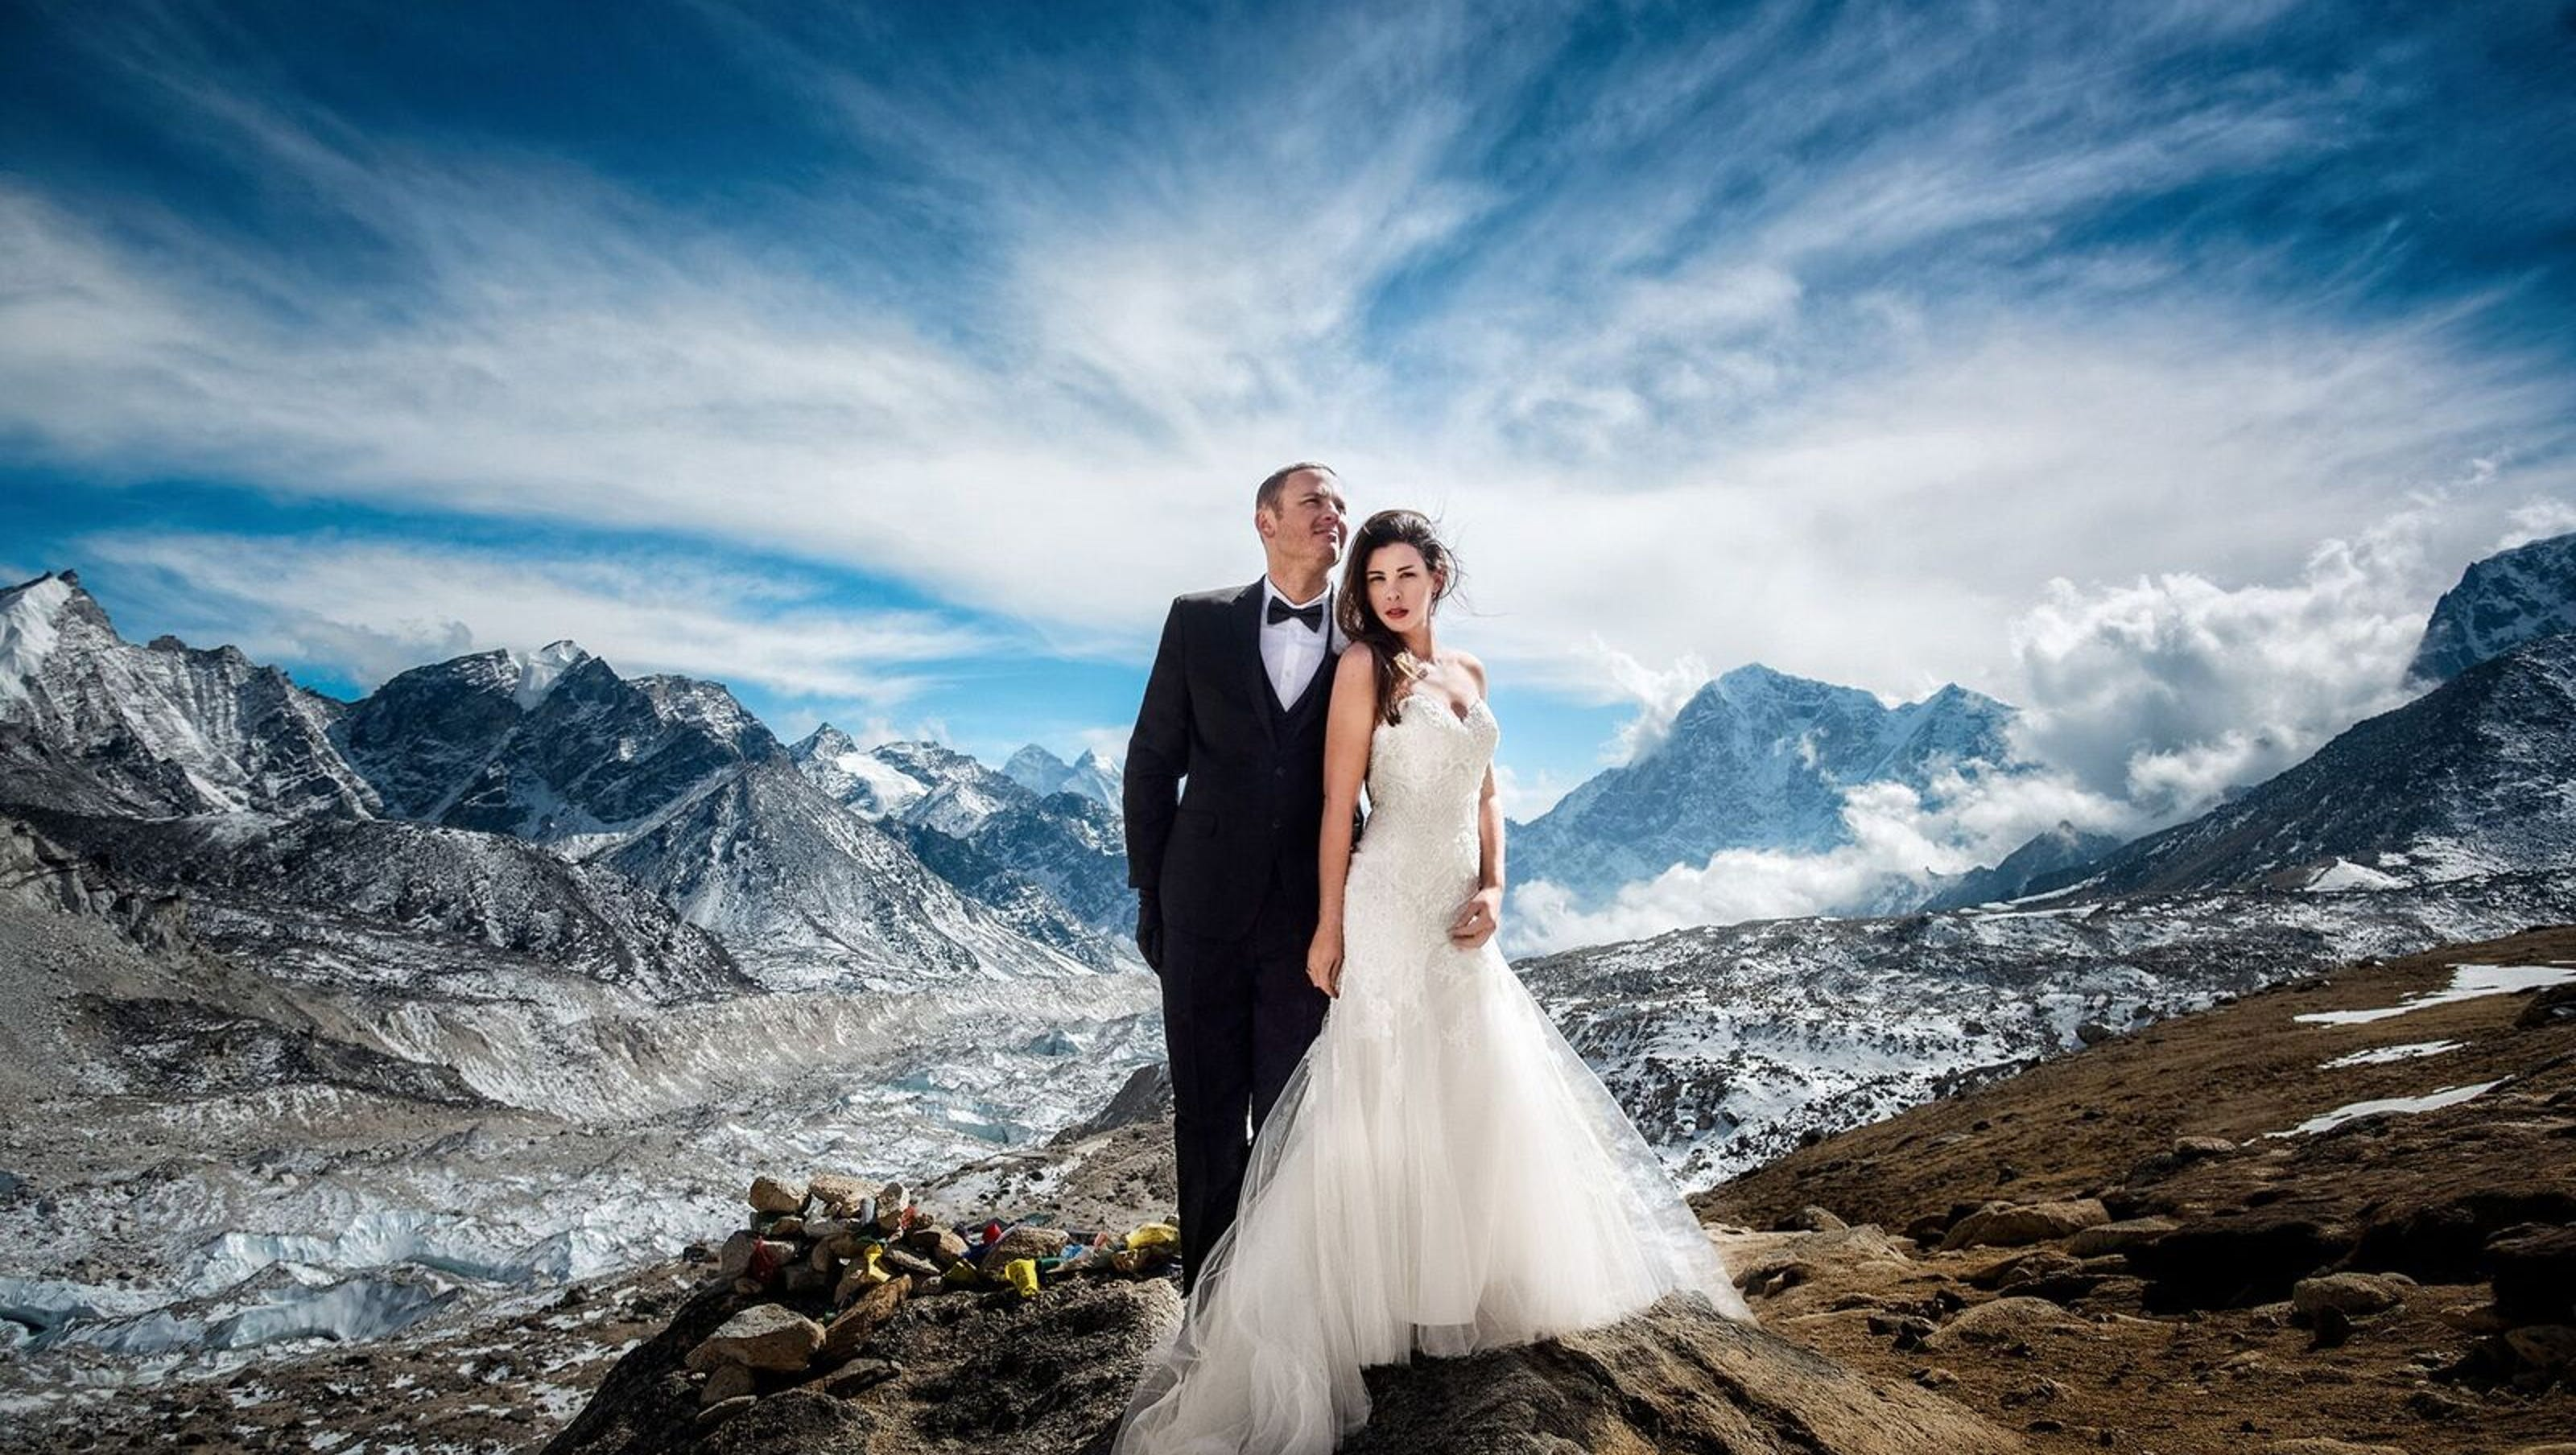 This Couple Hiked For 8 Days To Get Married On Mt Everest The